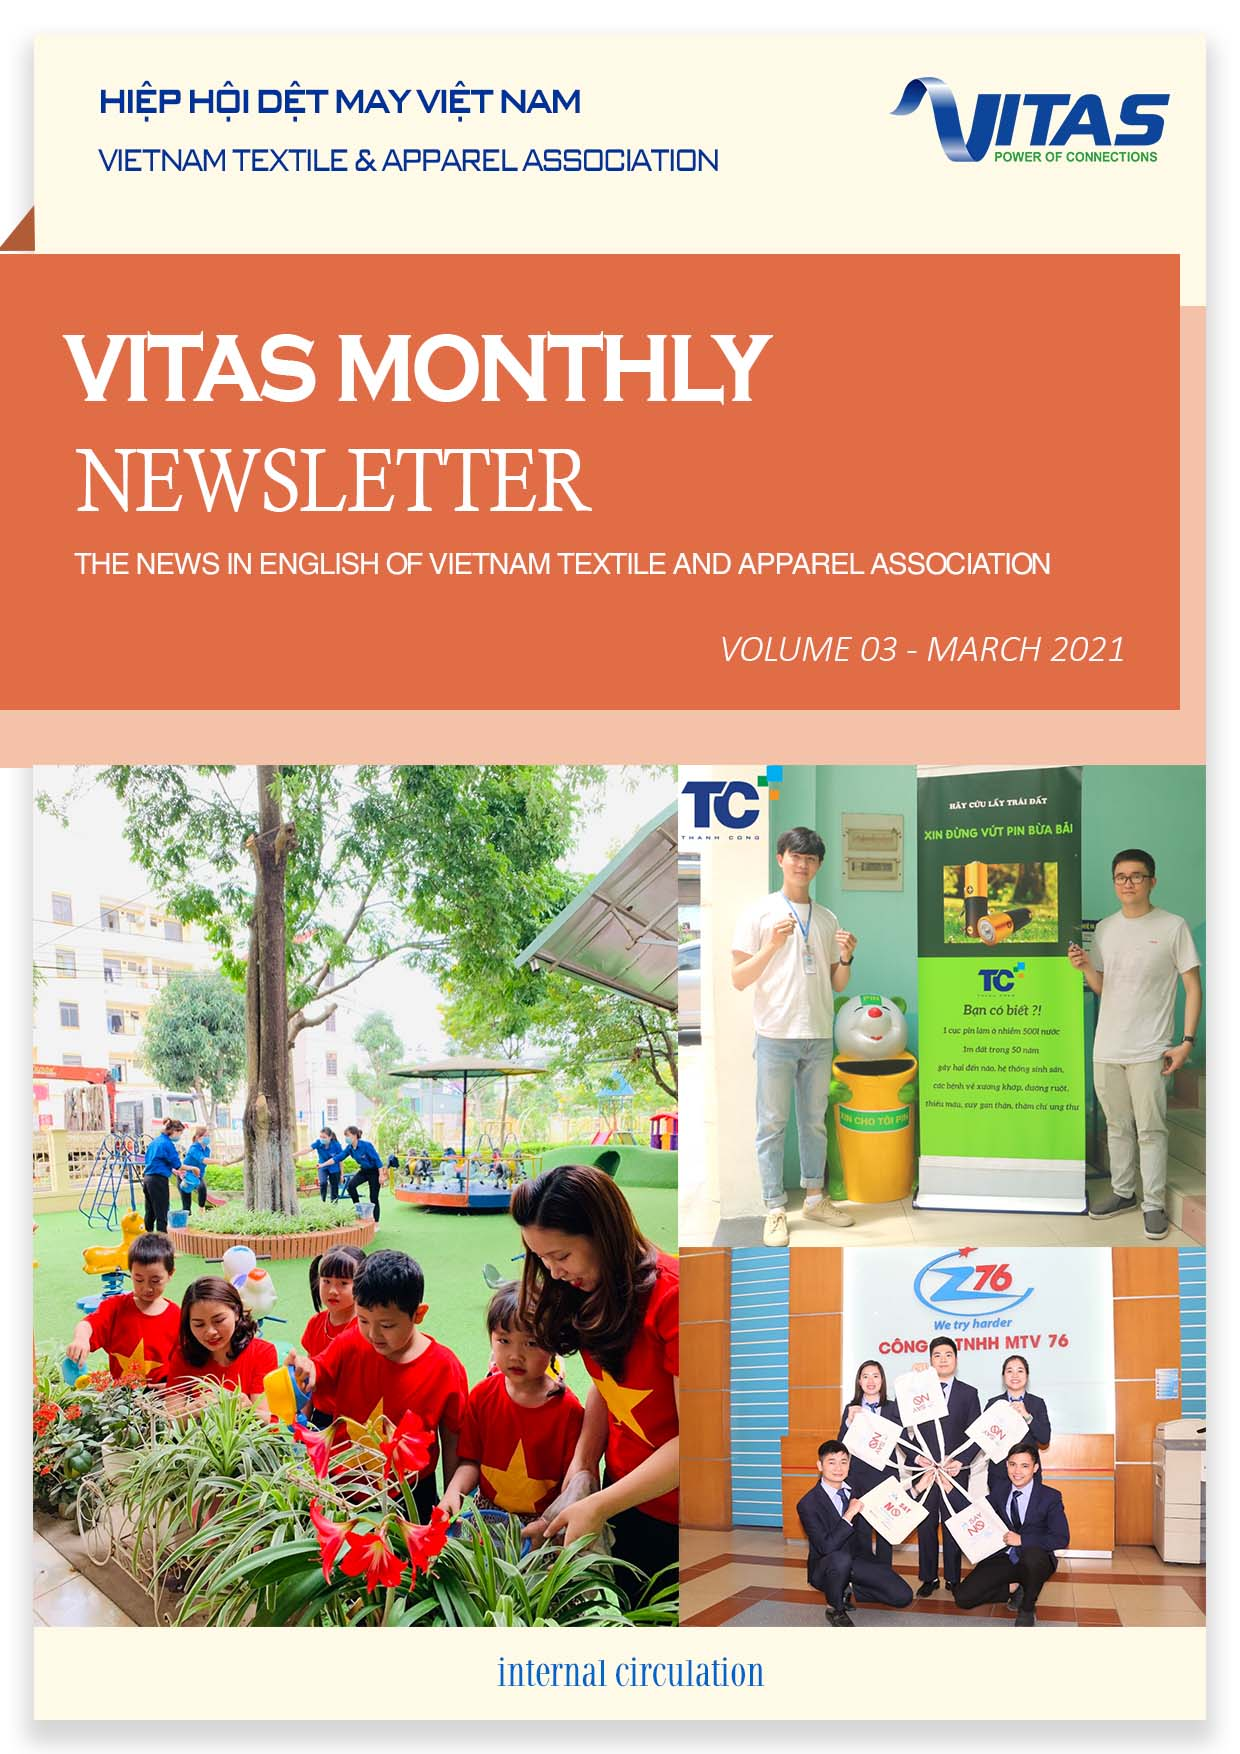 Vitas Monthly Newsletter - March 2021